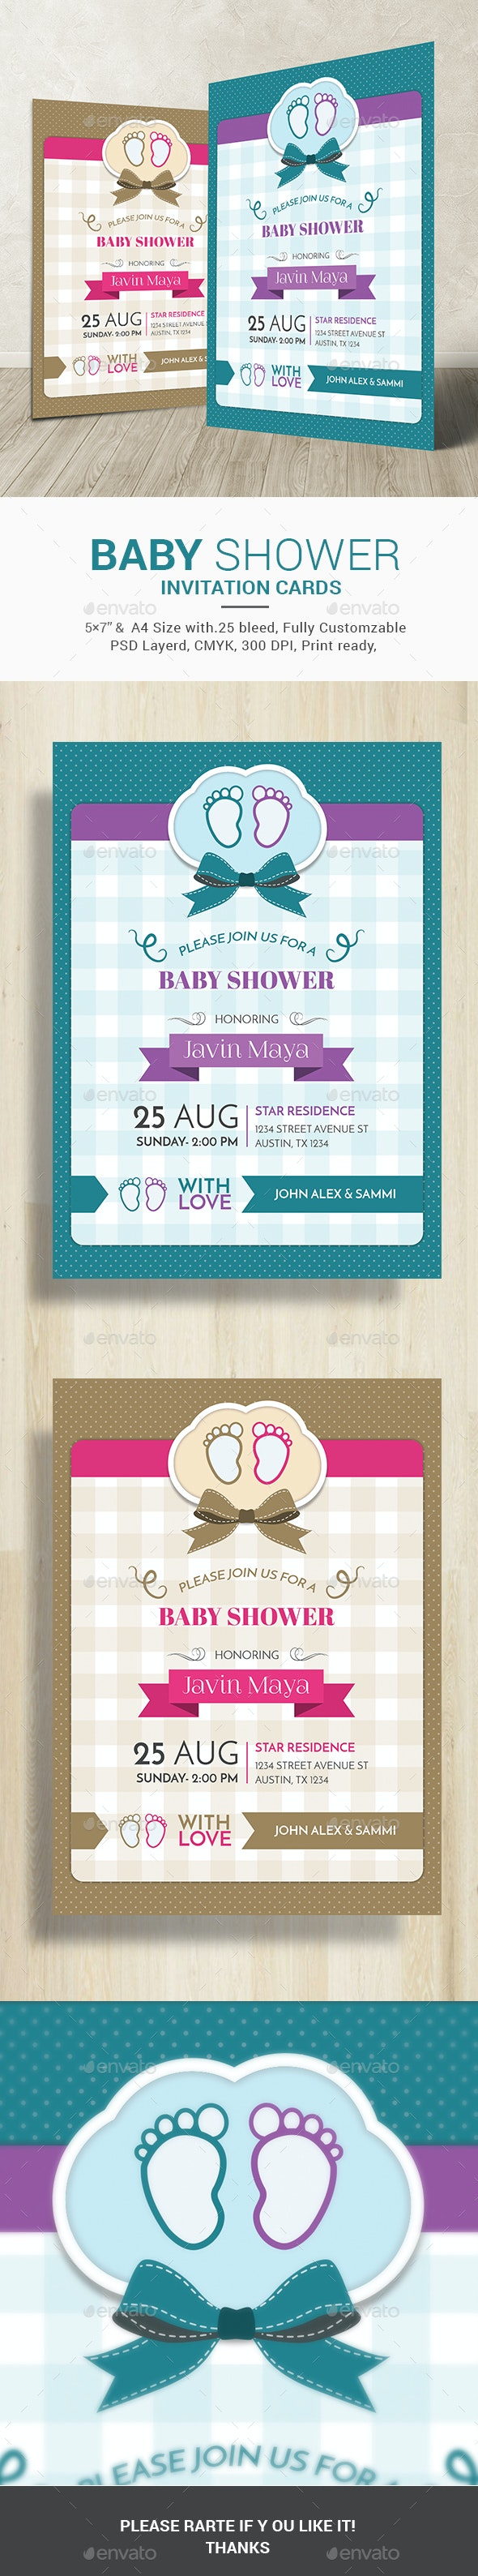 Baby Shower Invitation Card - Cards & Invites Print Templates